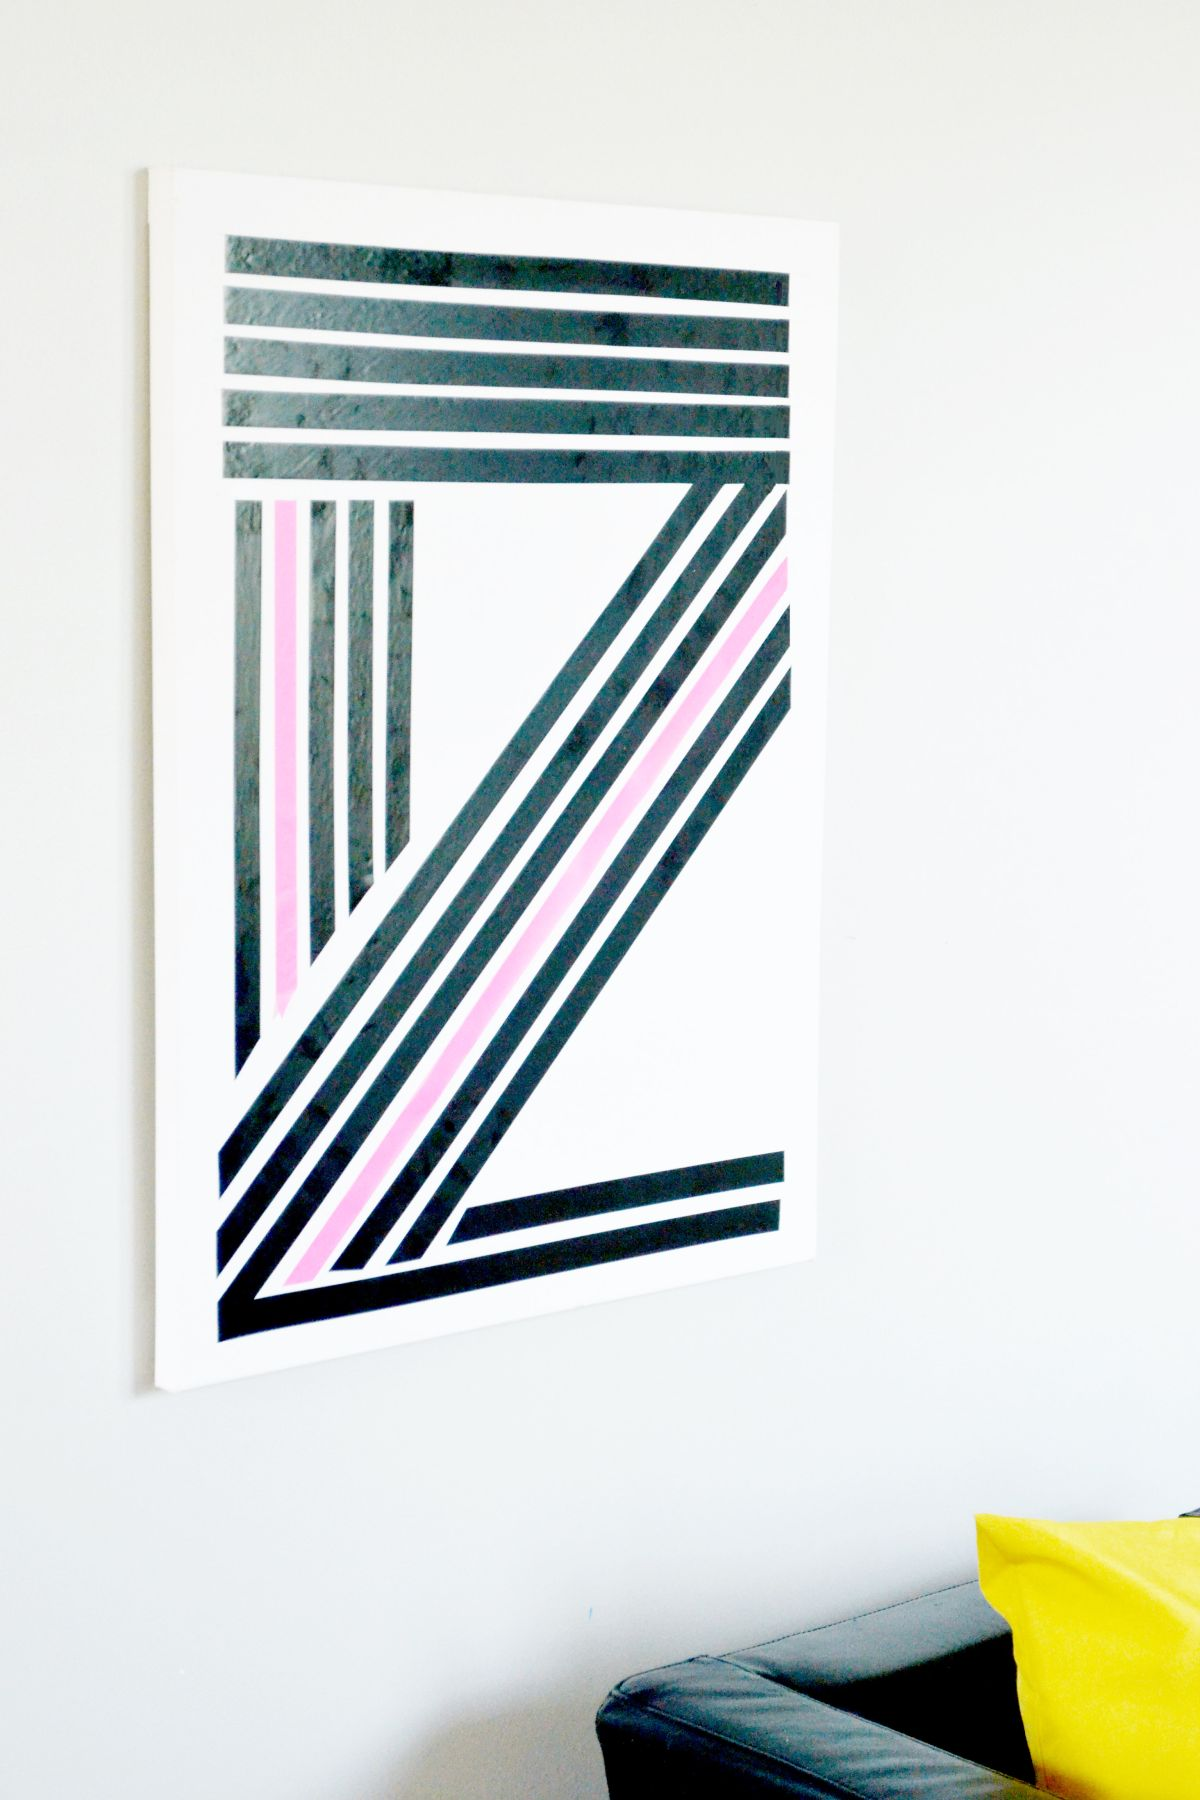 Display the washi tape art